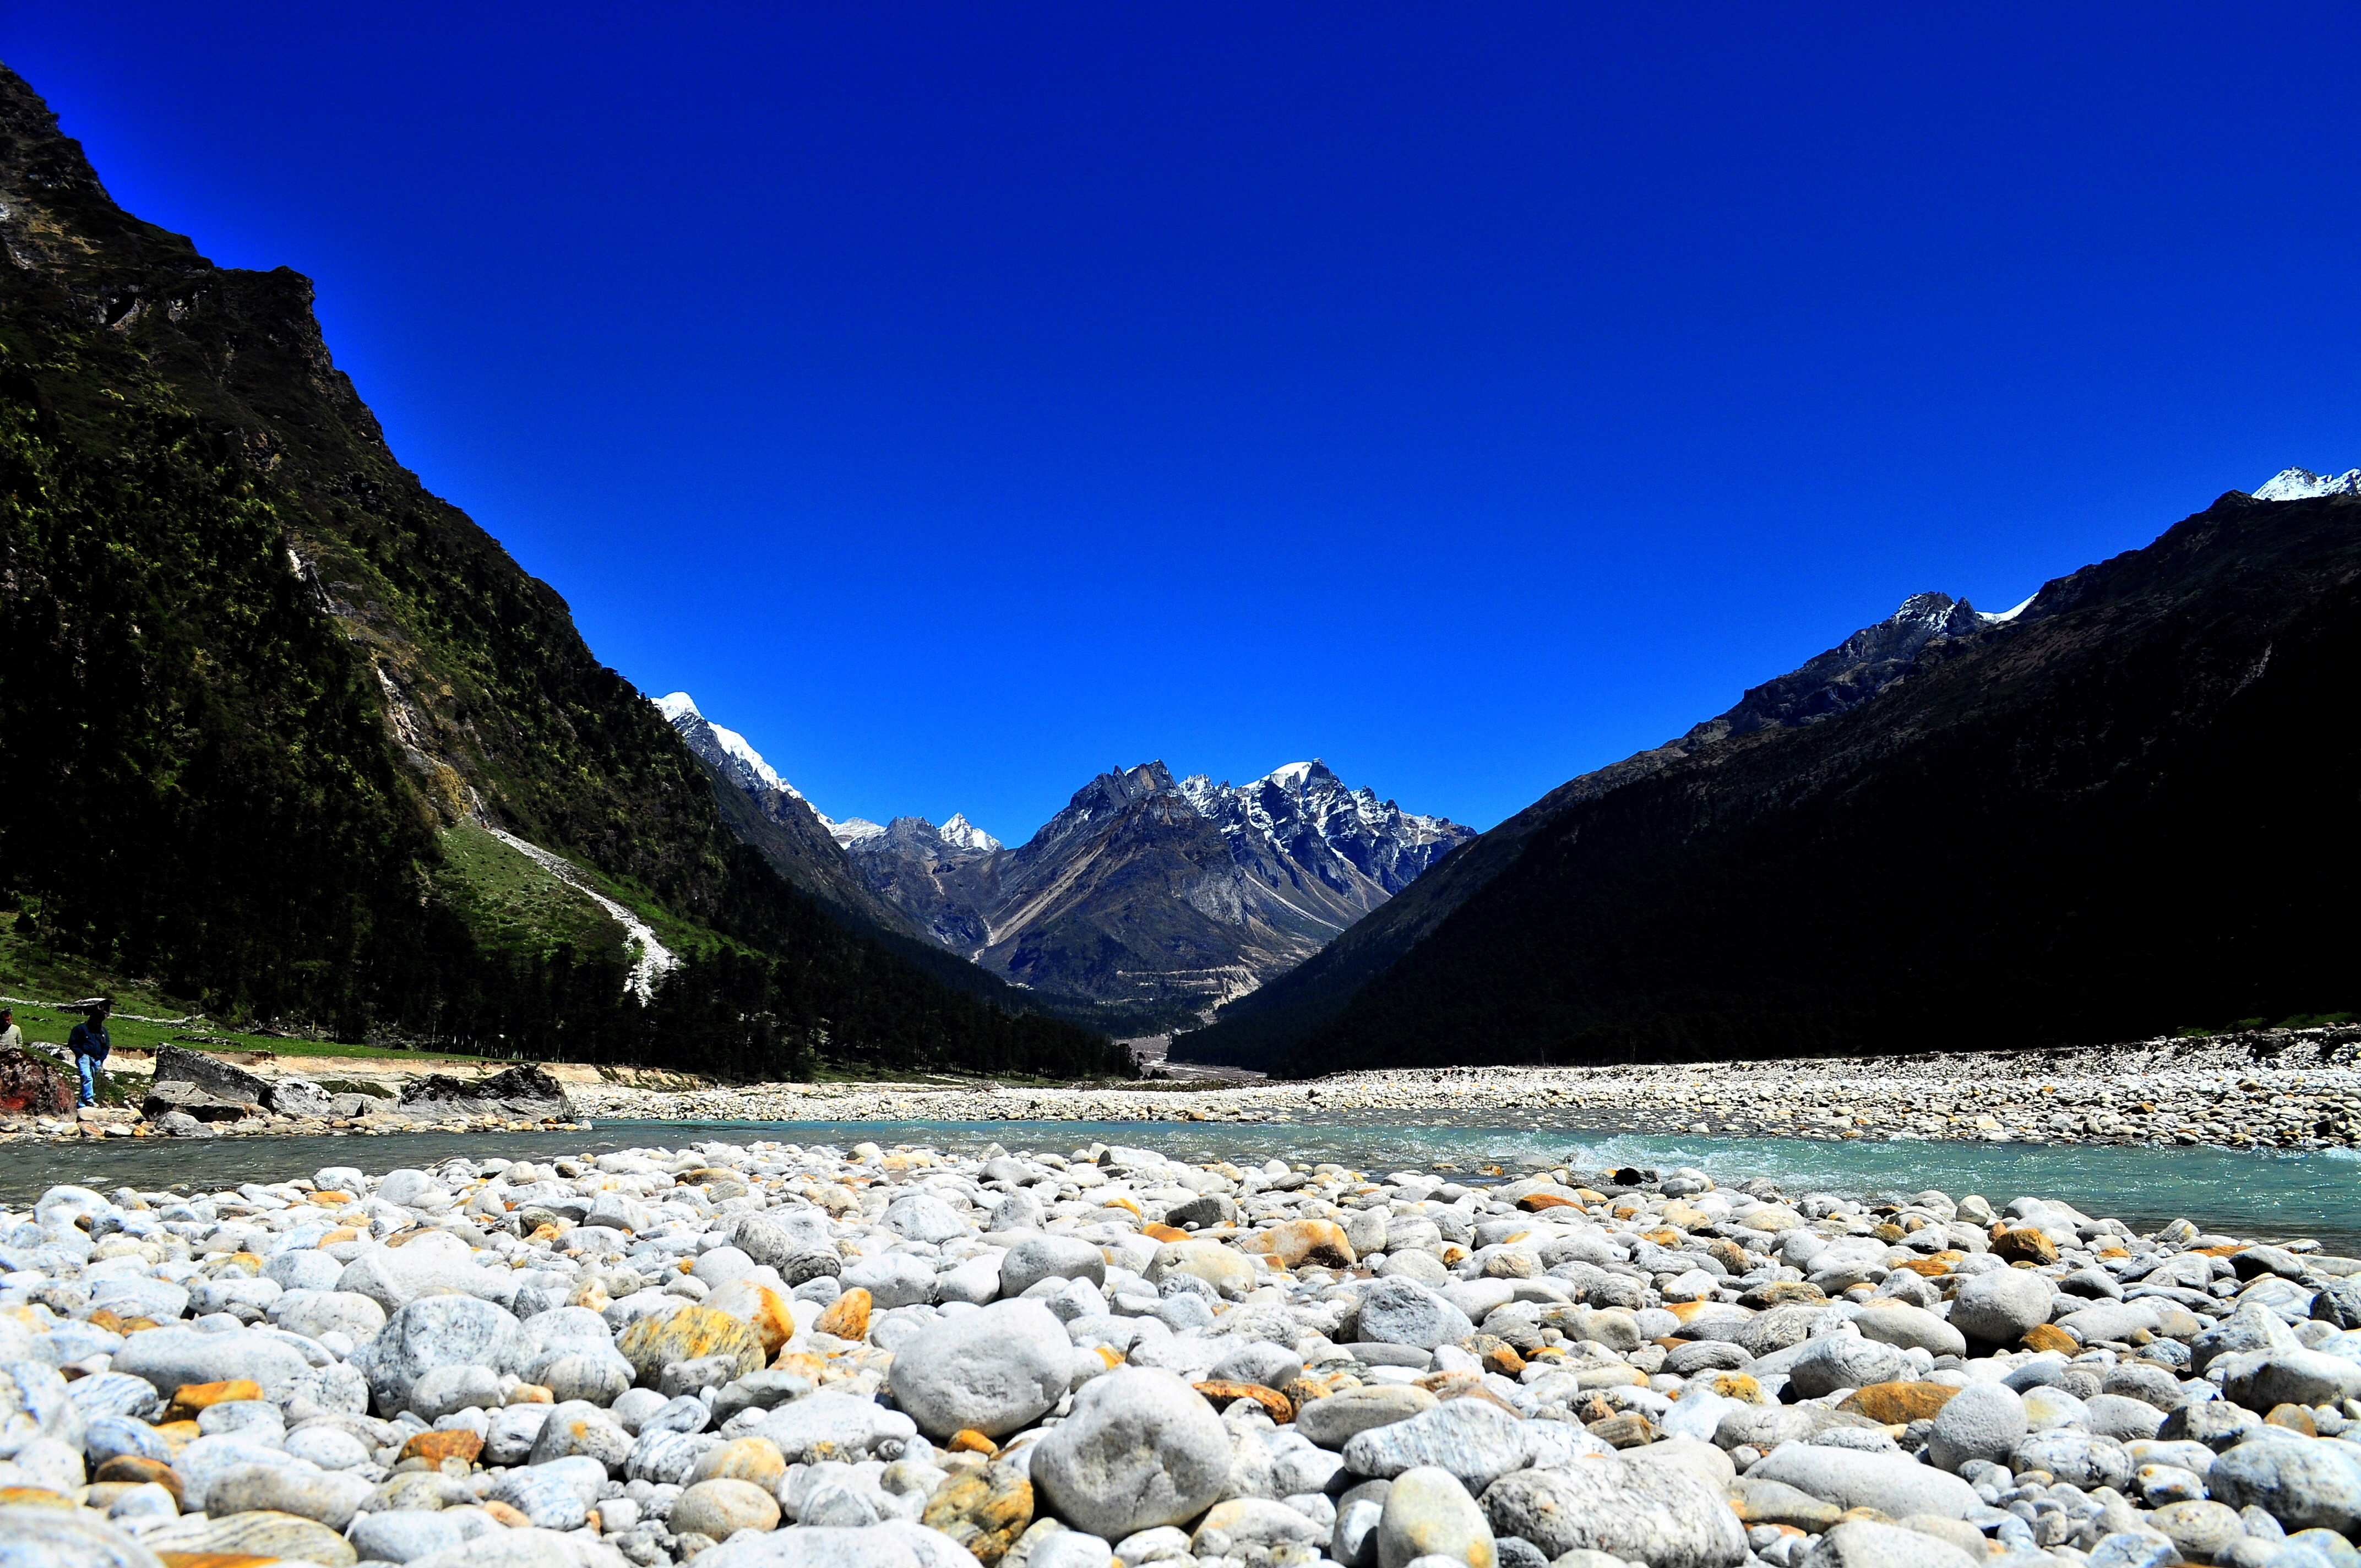 FileA View Of Yumthang Valley Sikkim Indiajpg